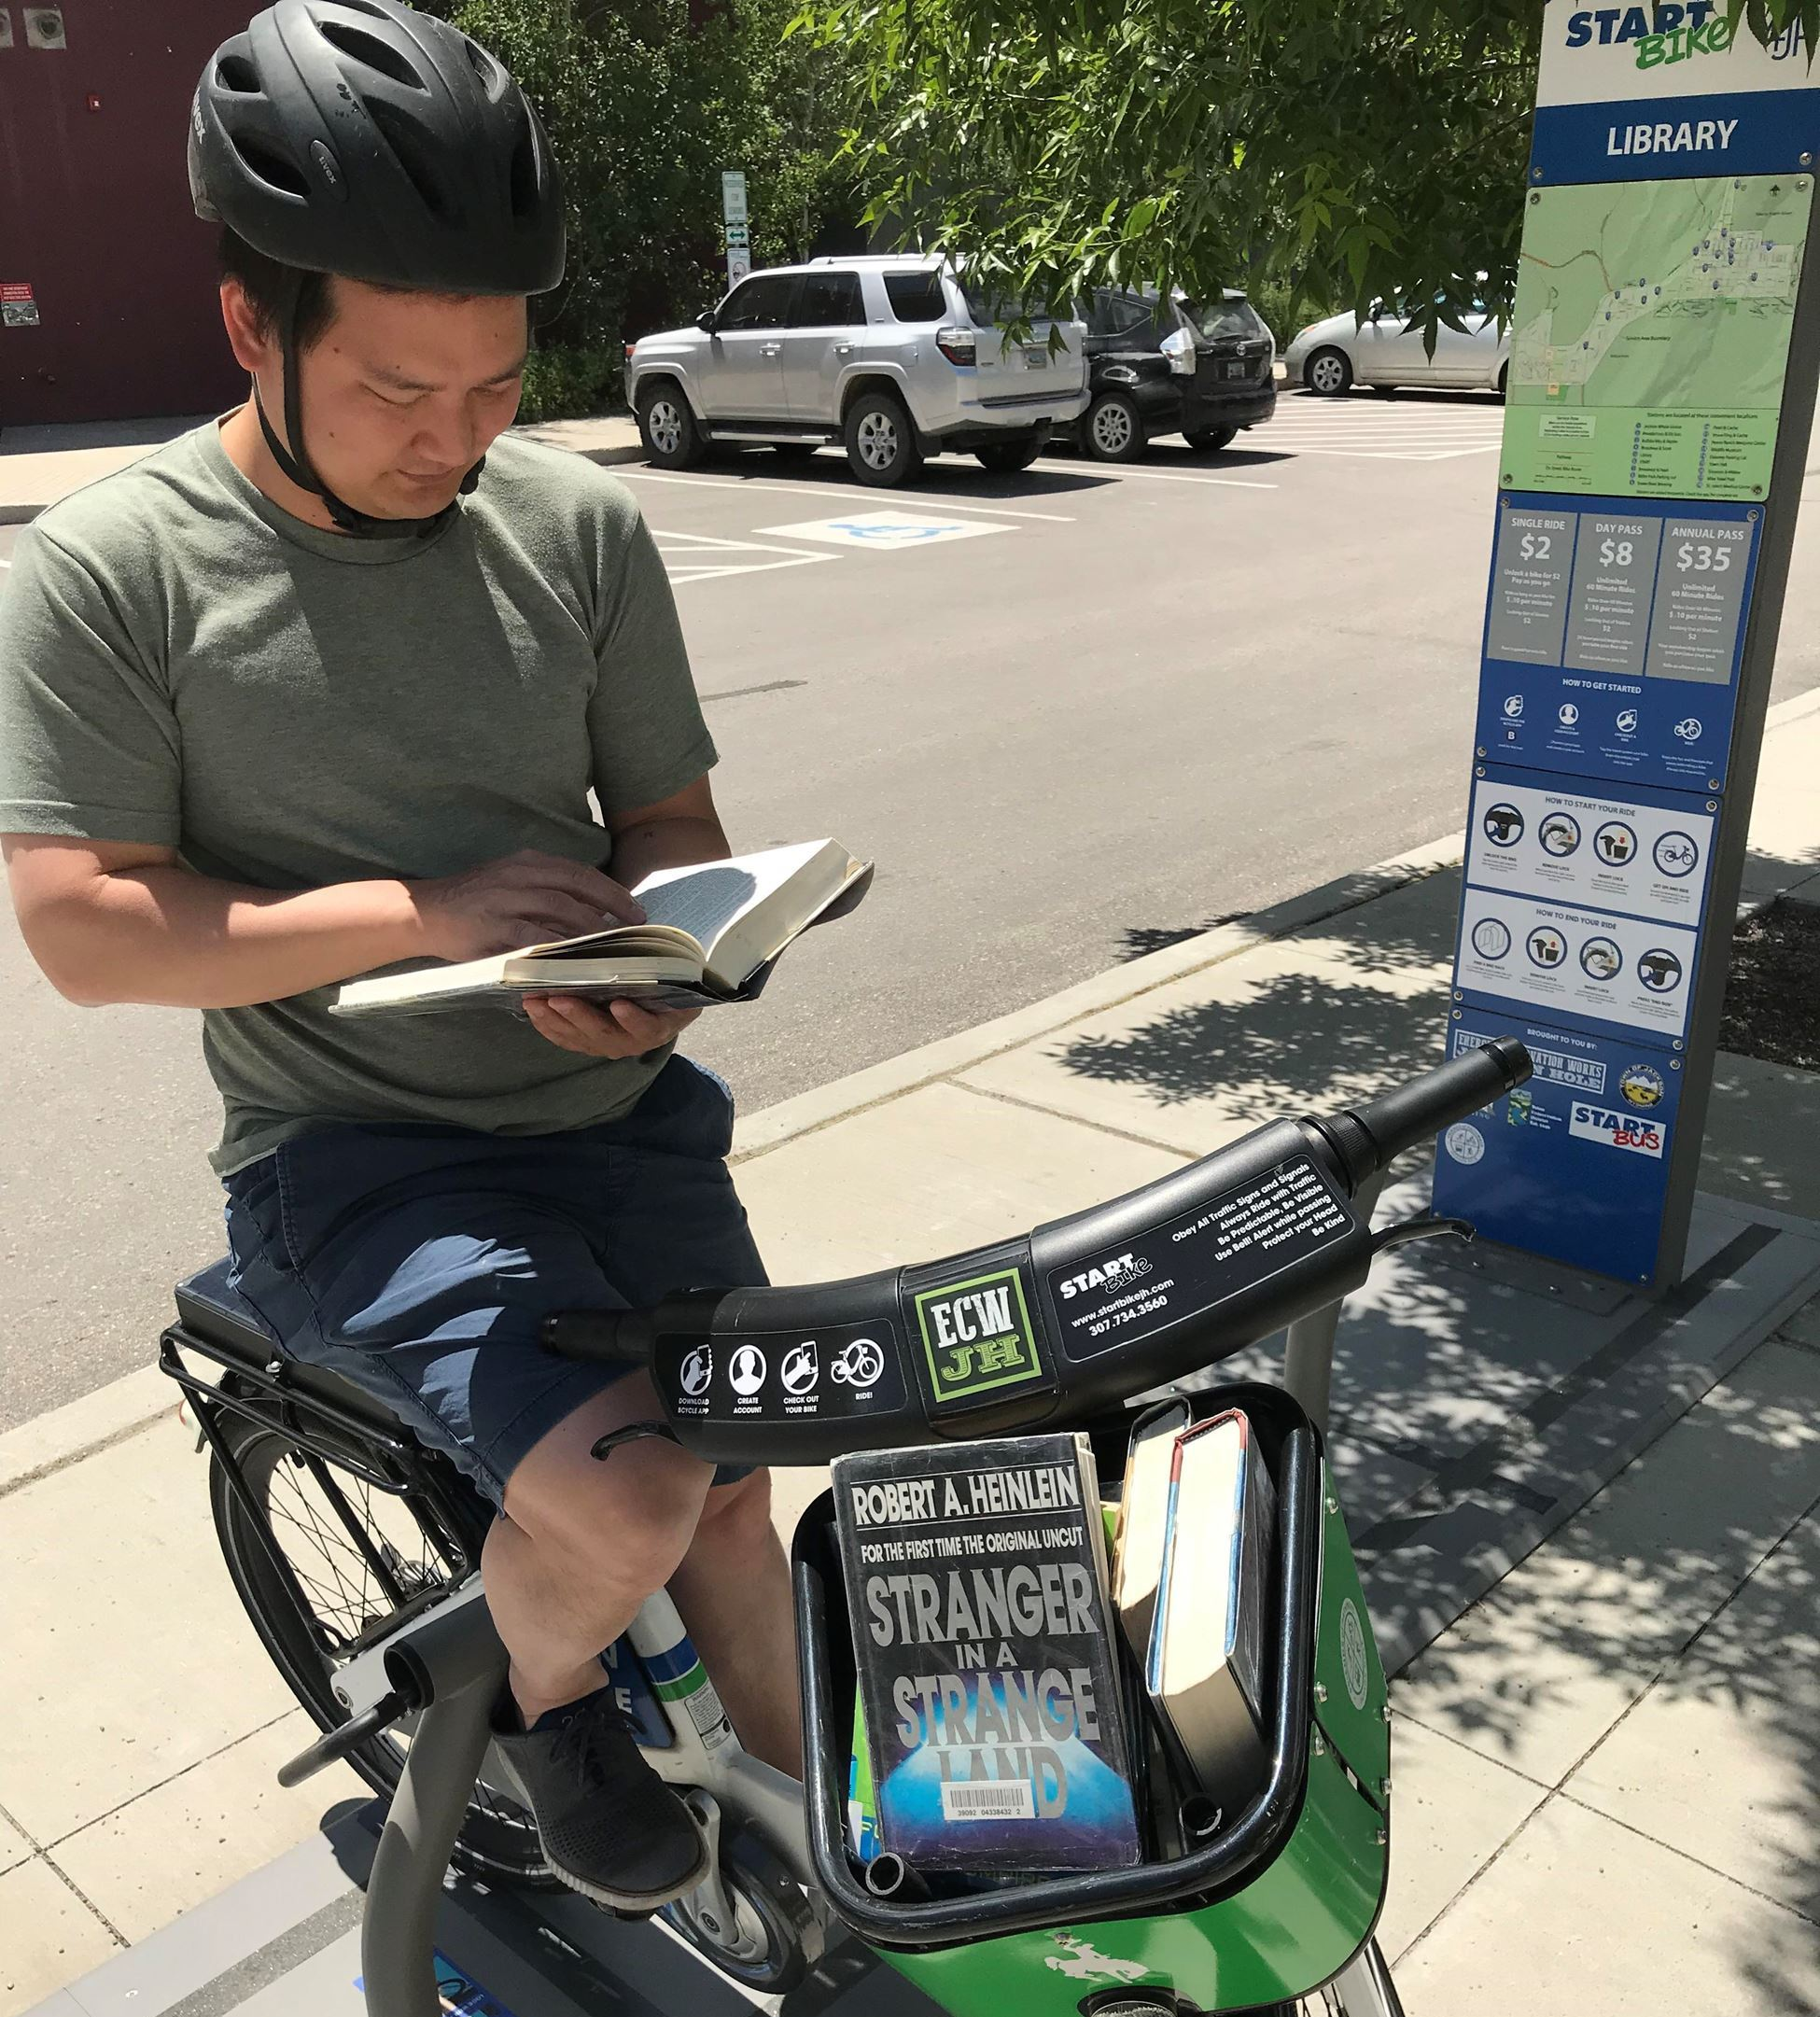 image of MIke Yin reading on a bicycle